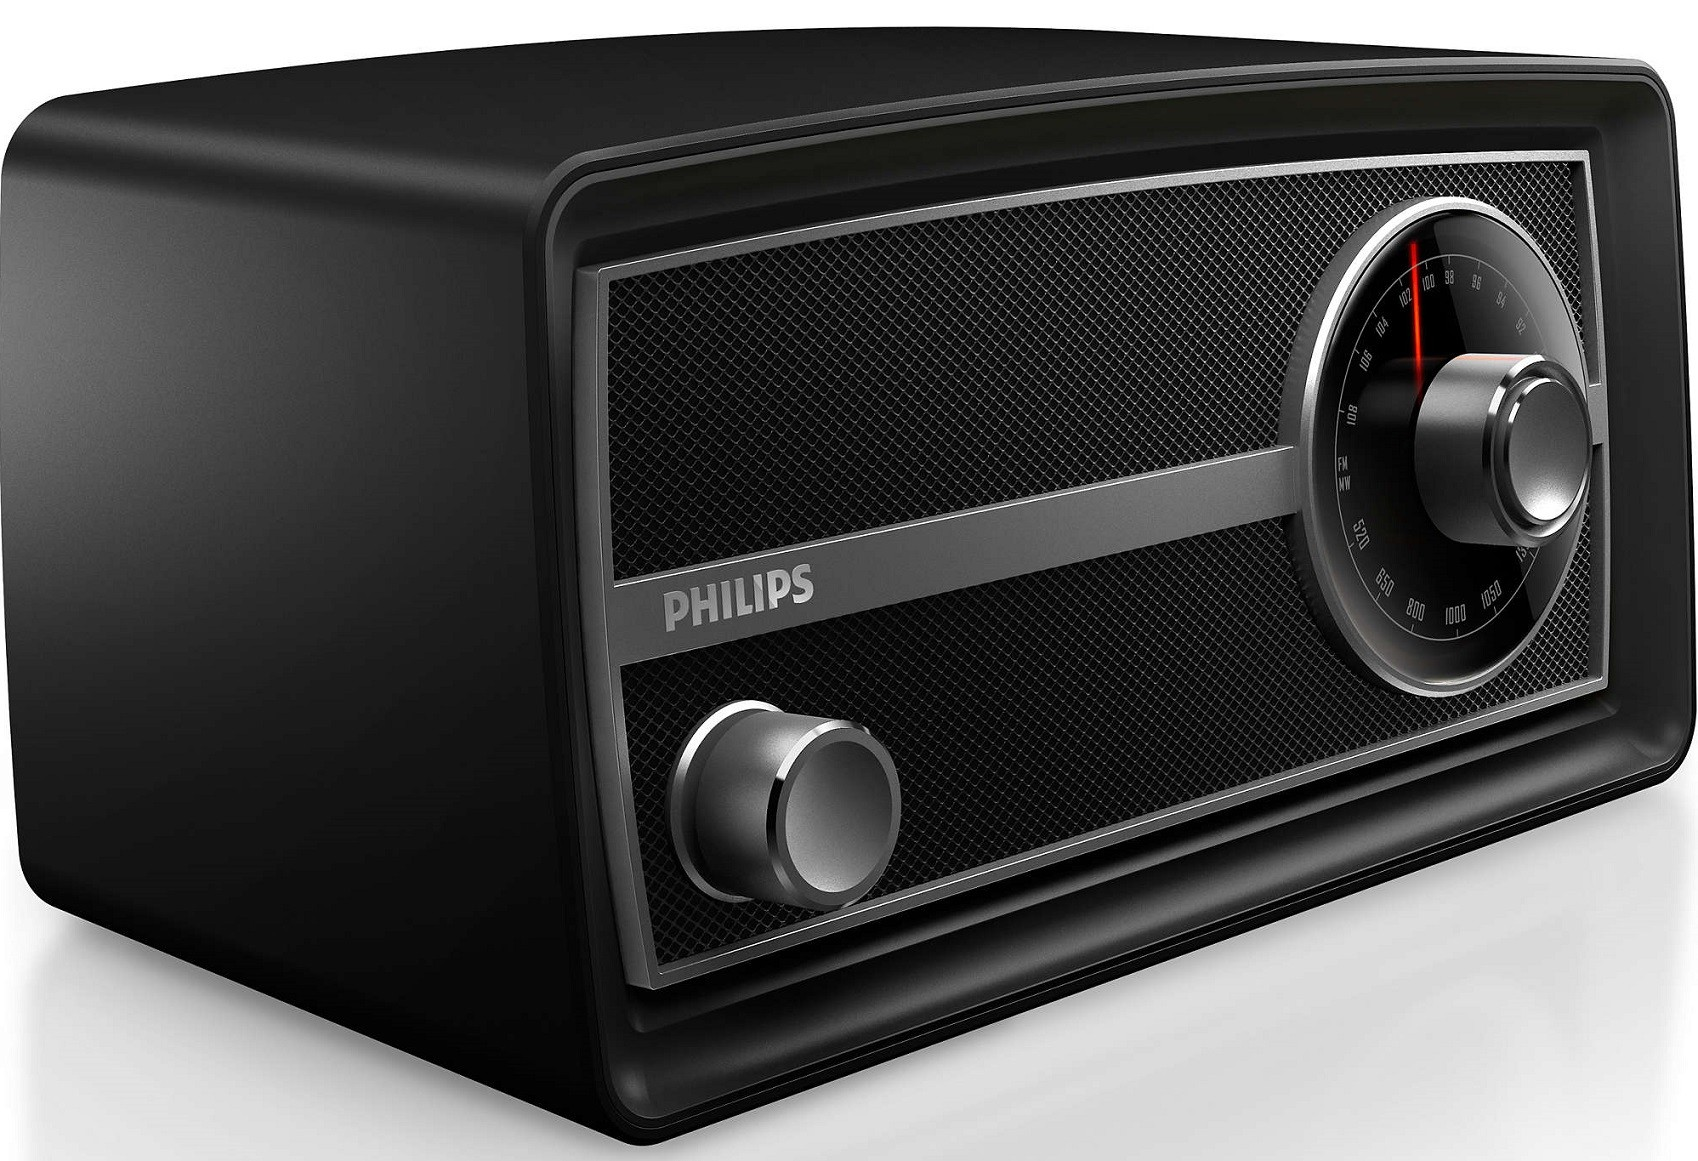 PHILIPS - OR 2000 B/12